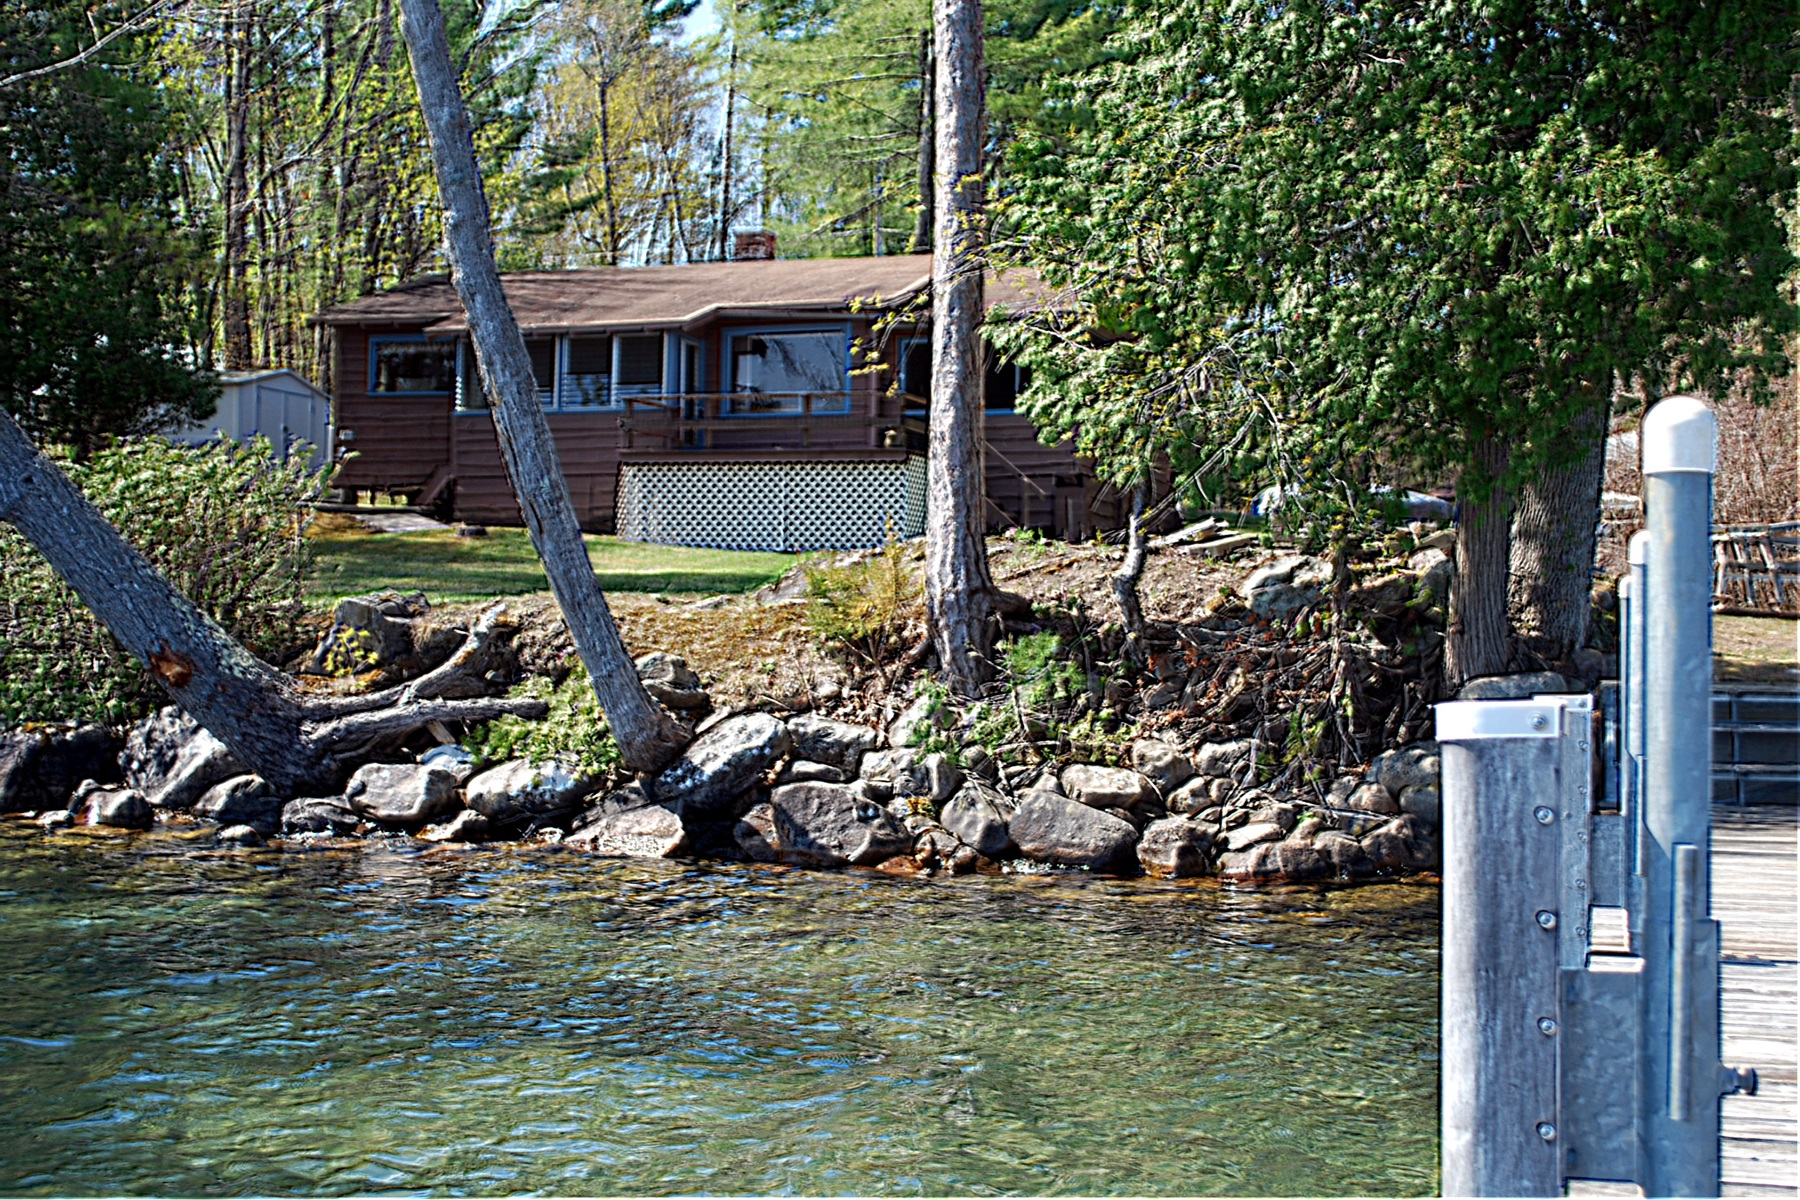 Villa per Vendita alle ore Waterfront Cottage on Lake George 39 Pine Cove Rd Hague, New York, 12836 Stati Uniti